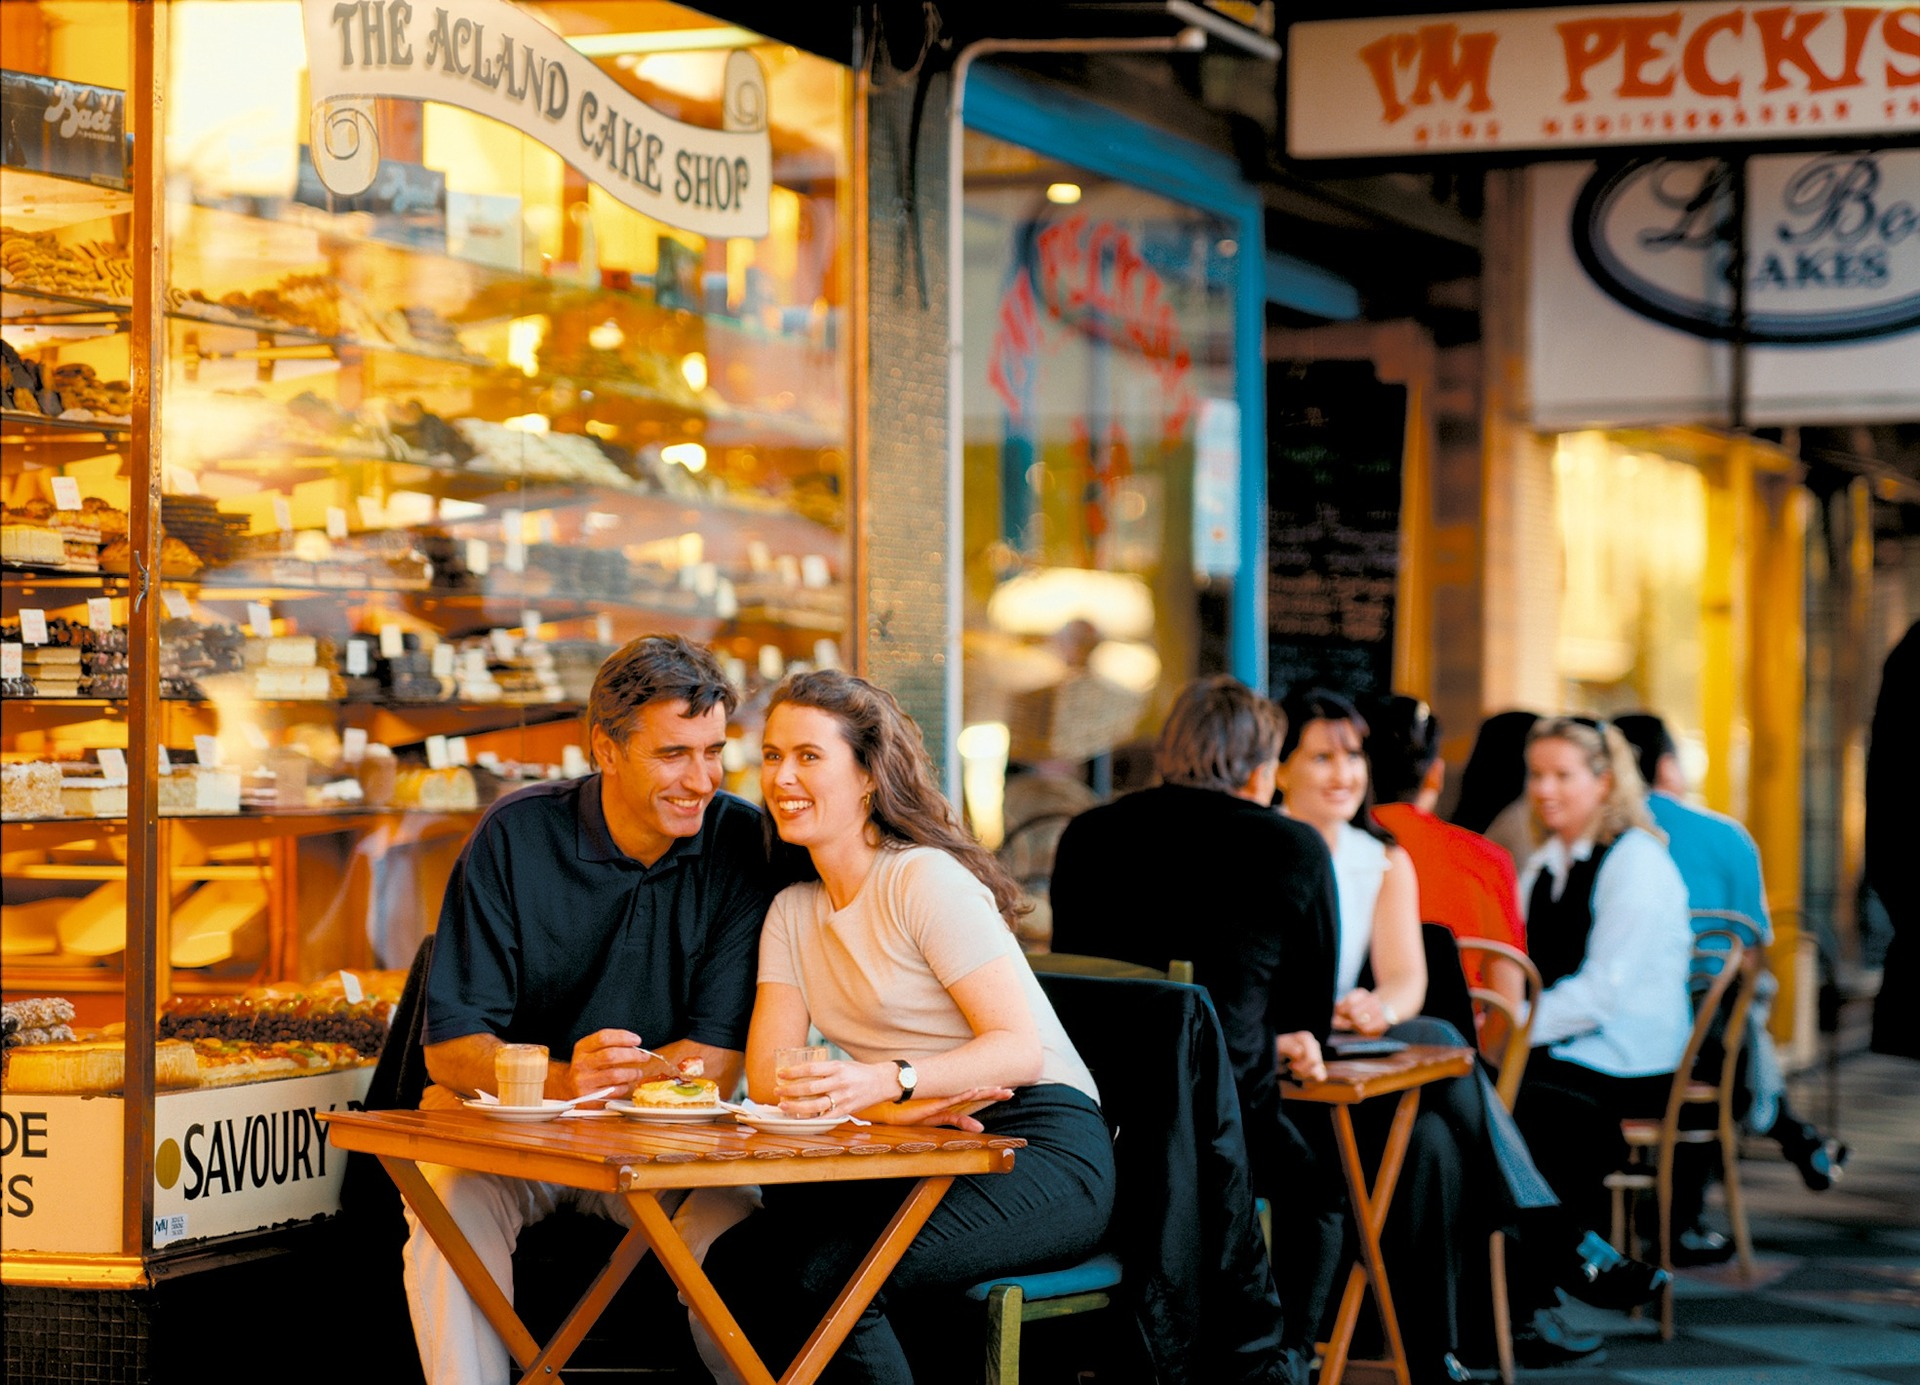 How to Increase Sales in a Restaurant Business?